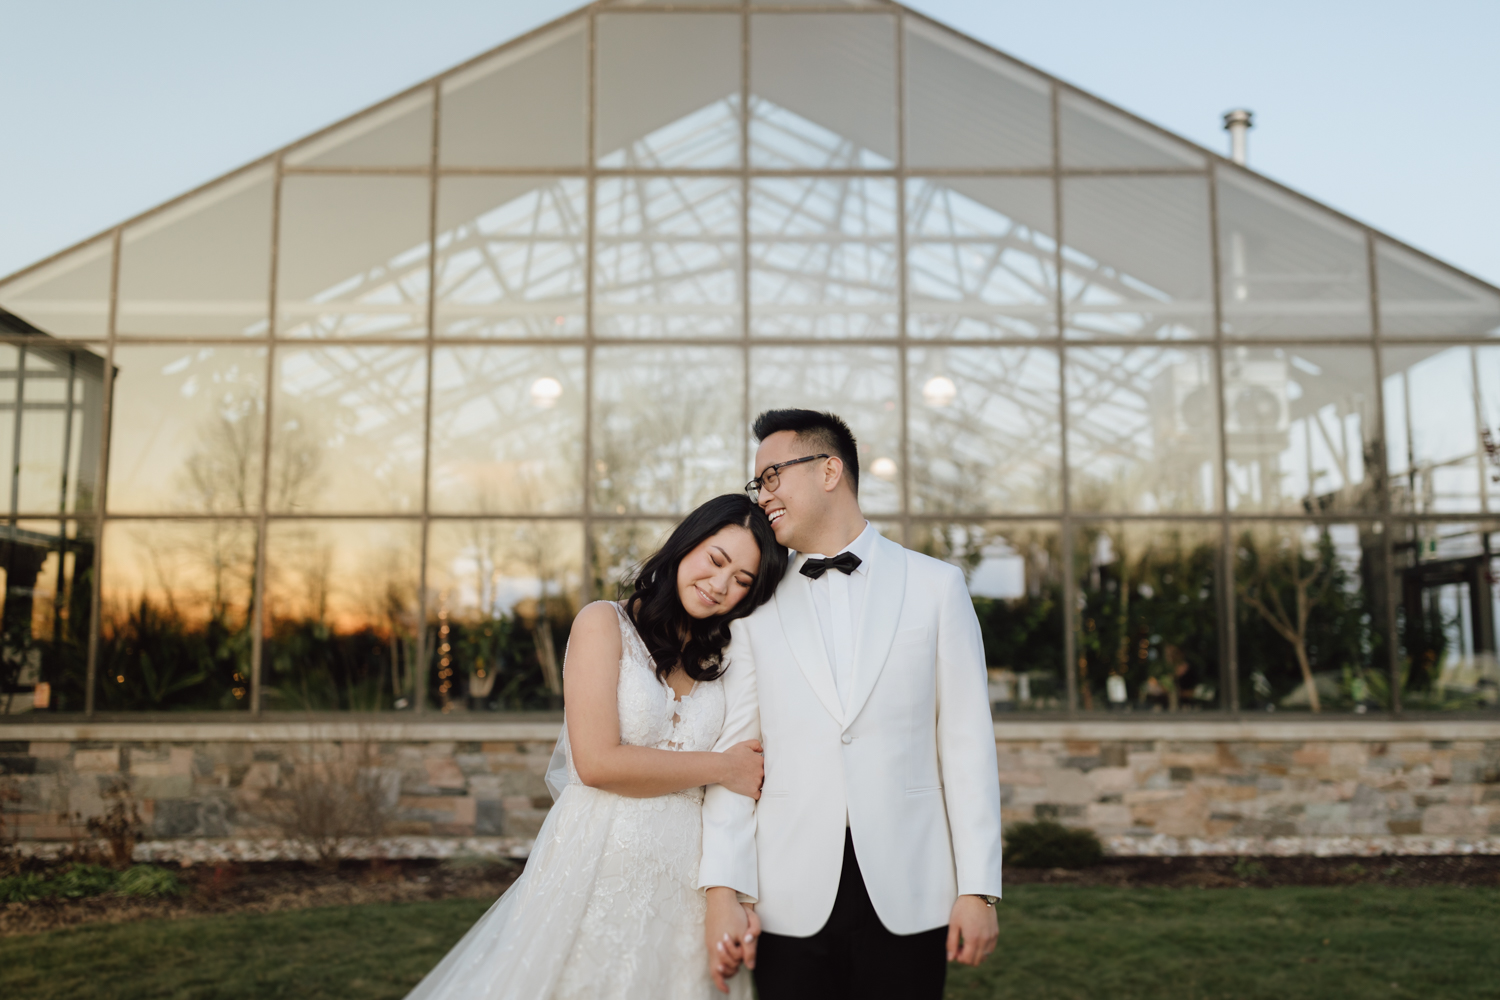 Ontario greenhouse wedding